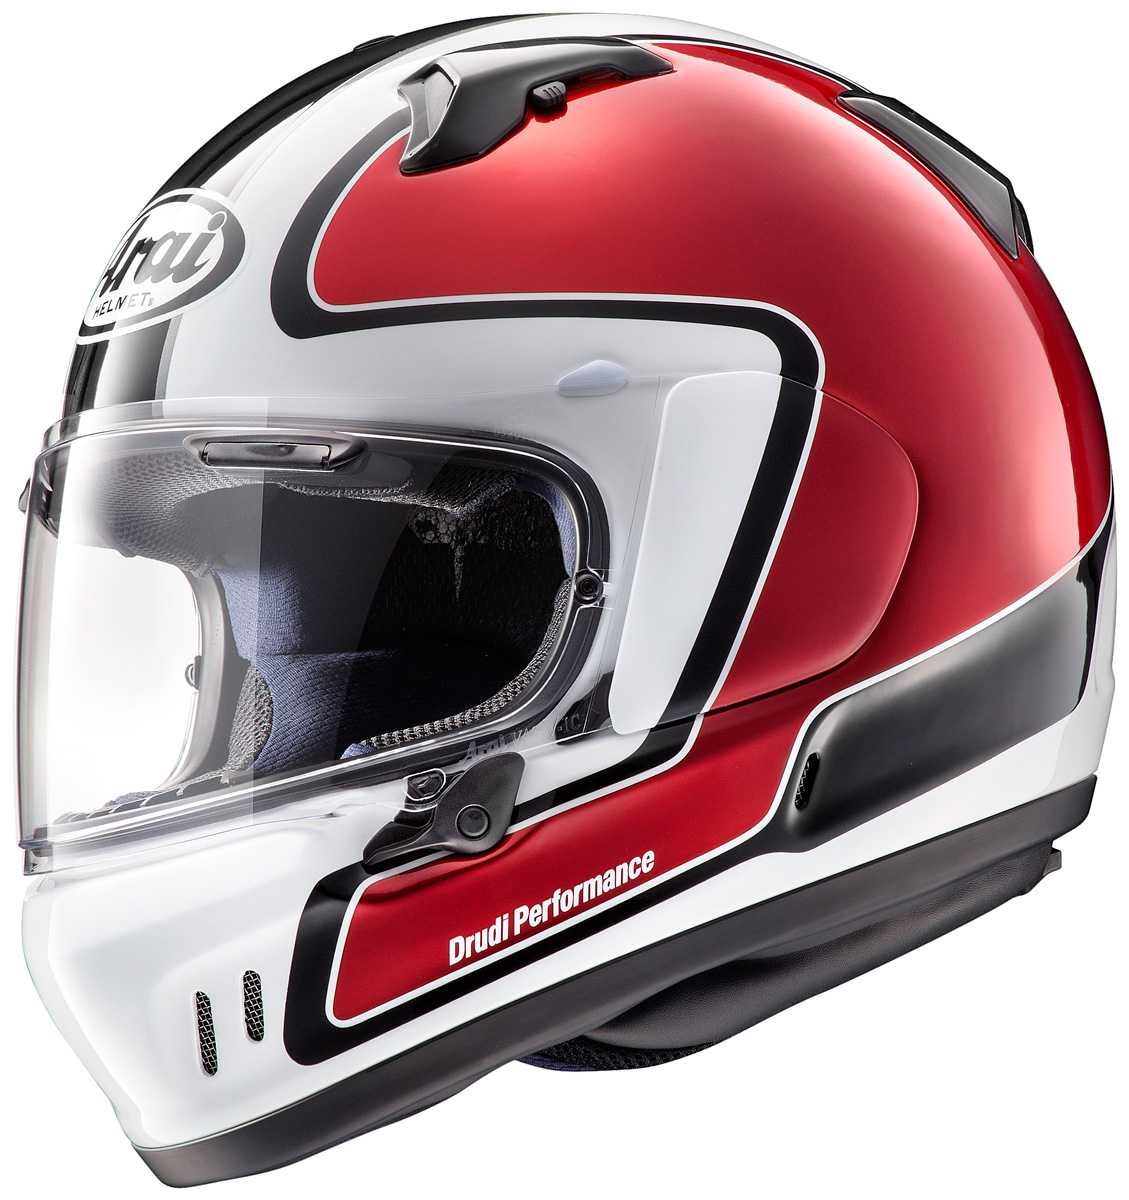 Arai xd outline red p